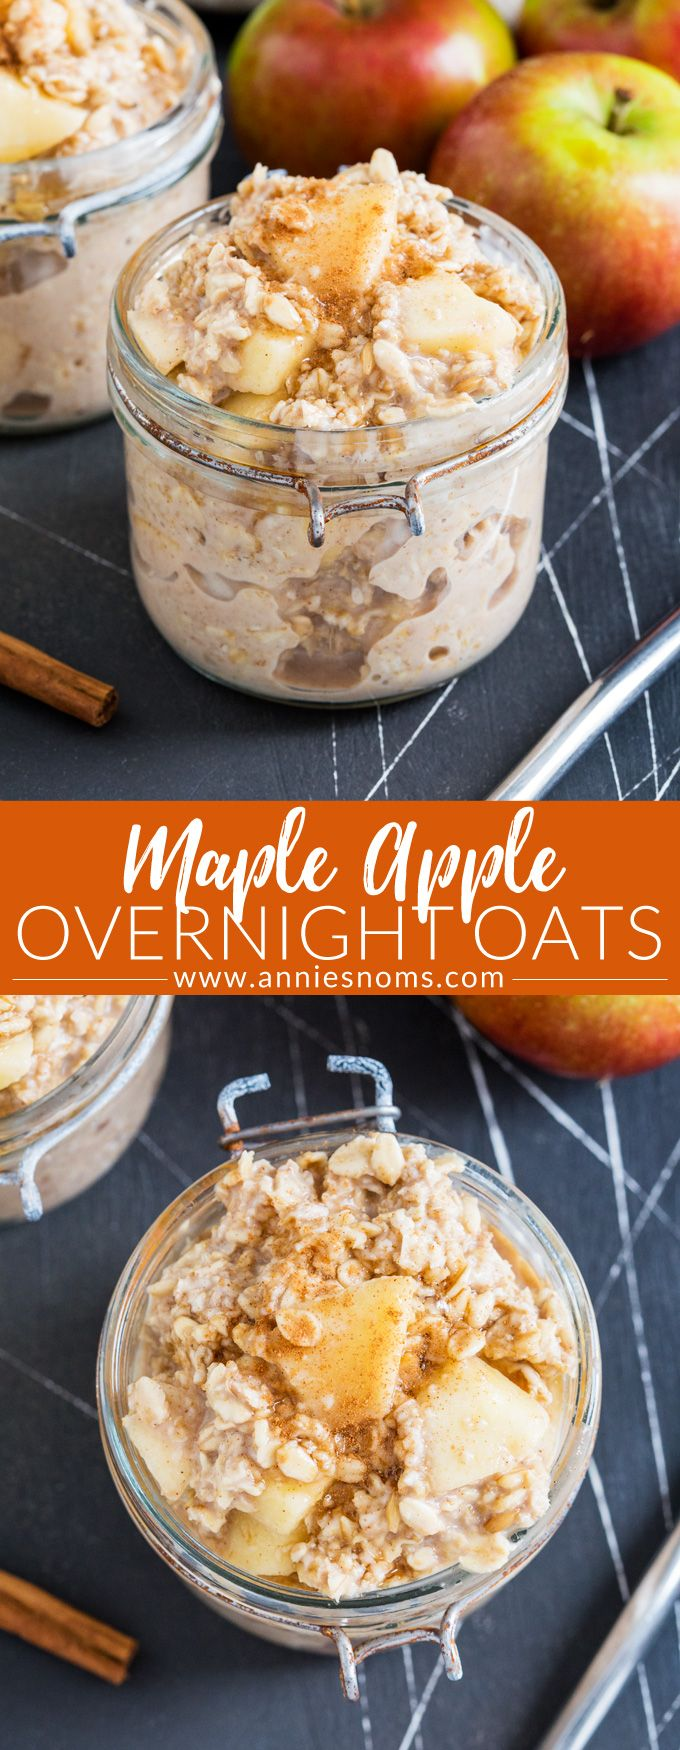 These Maple Apple Overnight Oats are the perfect make ahead breakfast; with two ways to make them, you're bound to fall in love with these creamy oats!